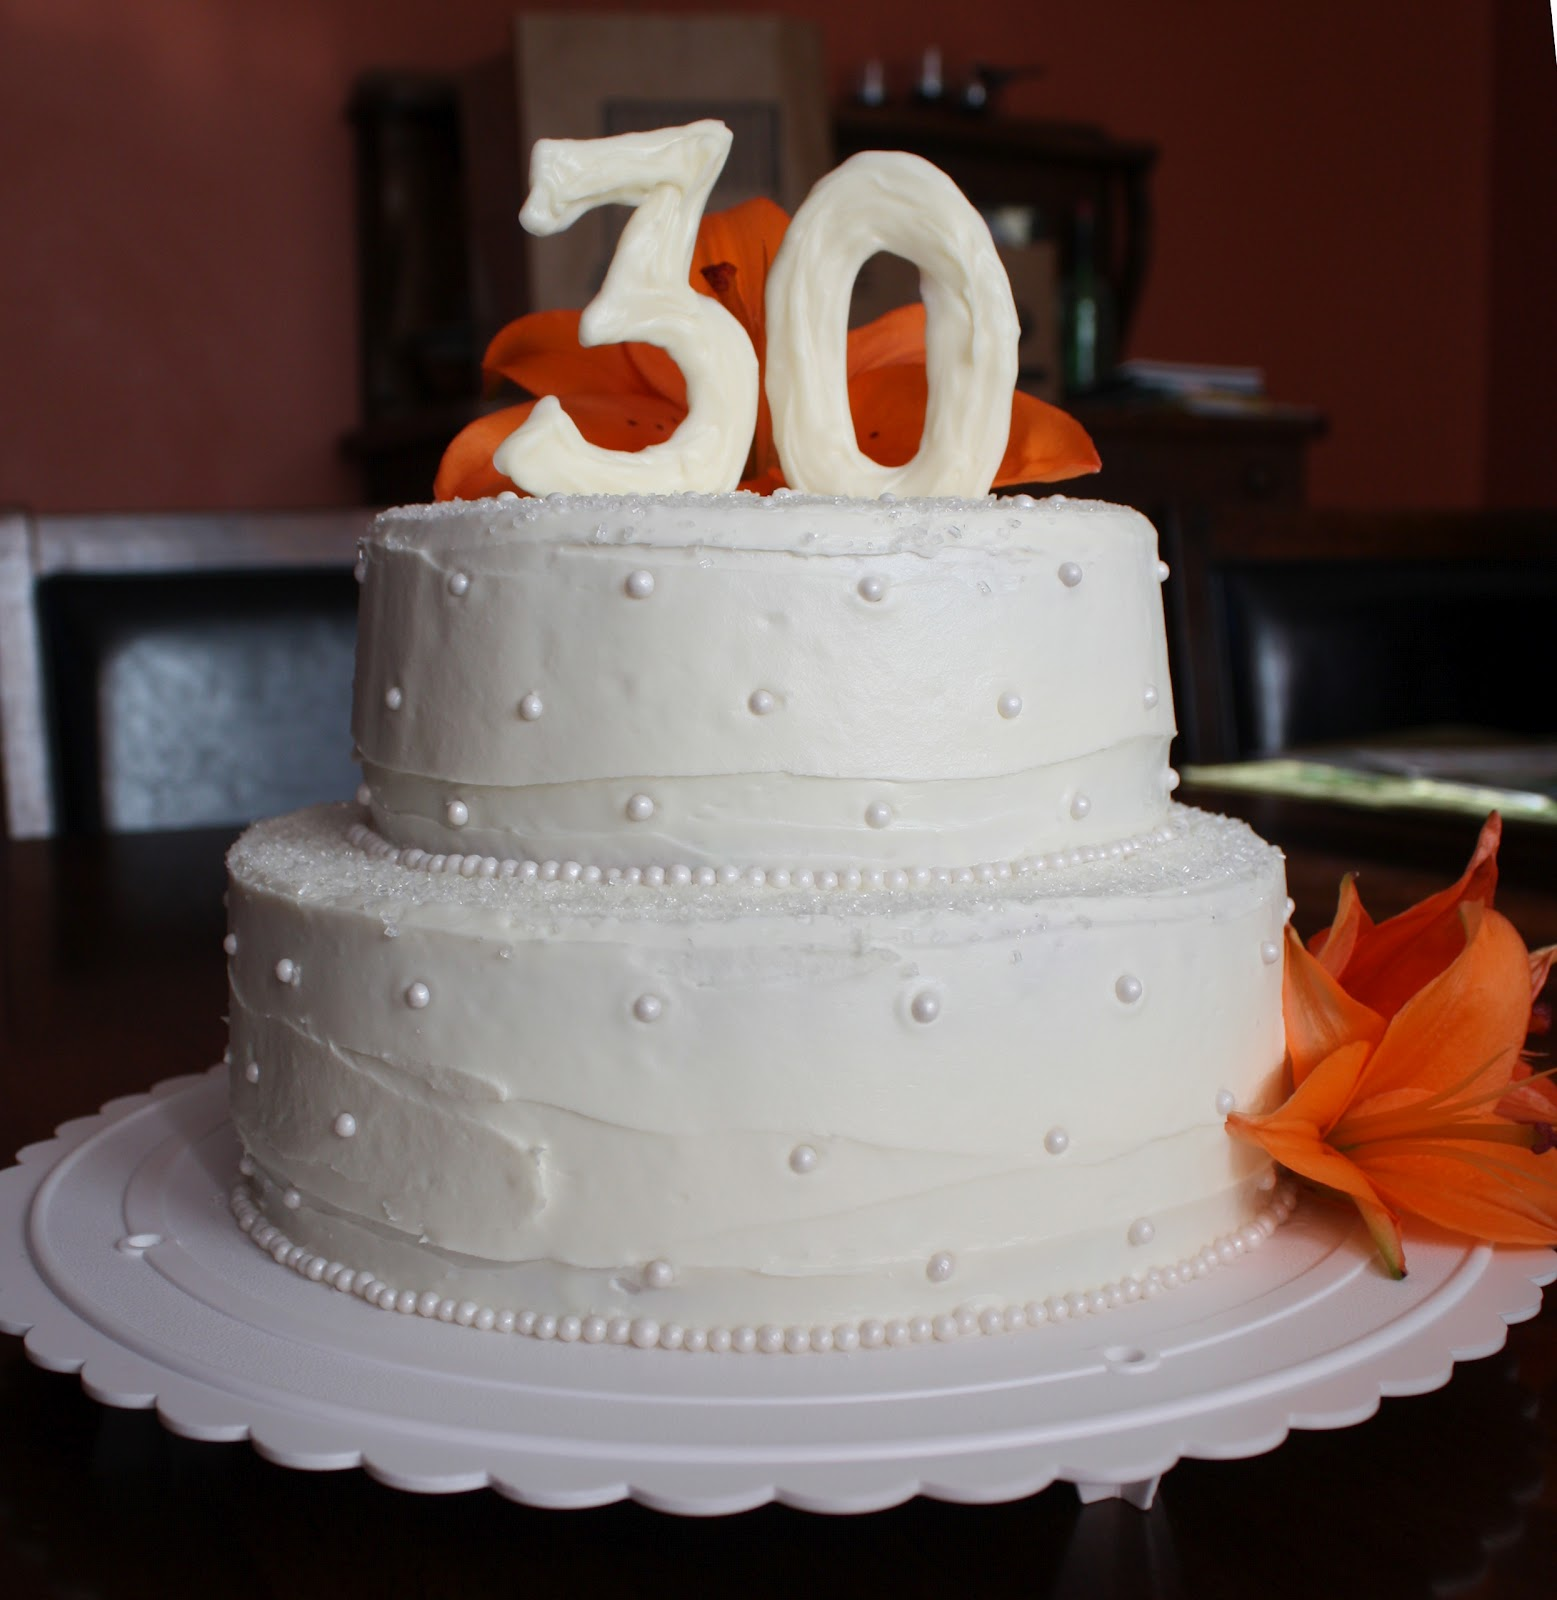 Outstanding Cake For 40th Wedding Anniversary Crest - The Wedding ...